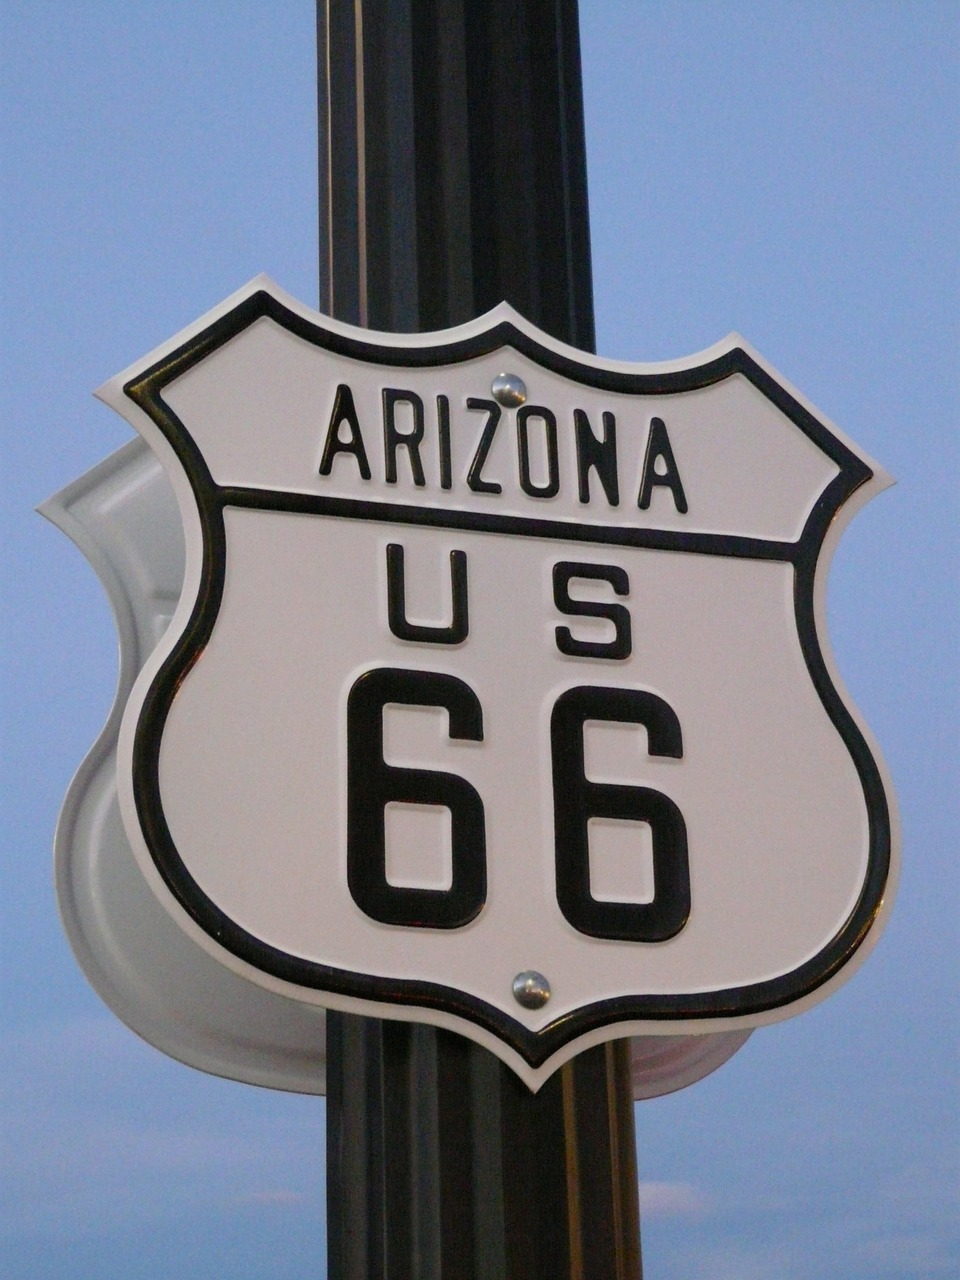 route 66 road shield free photo